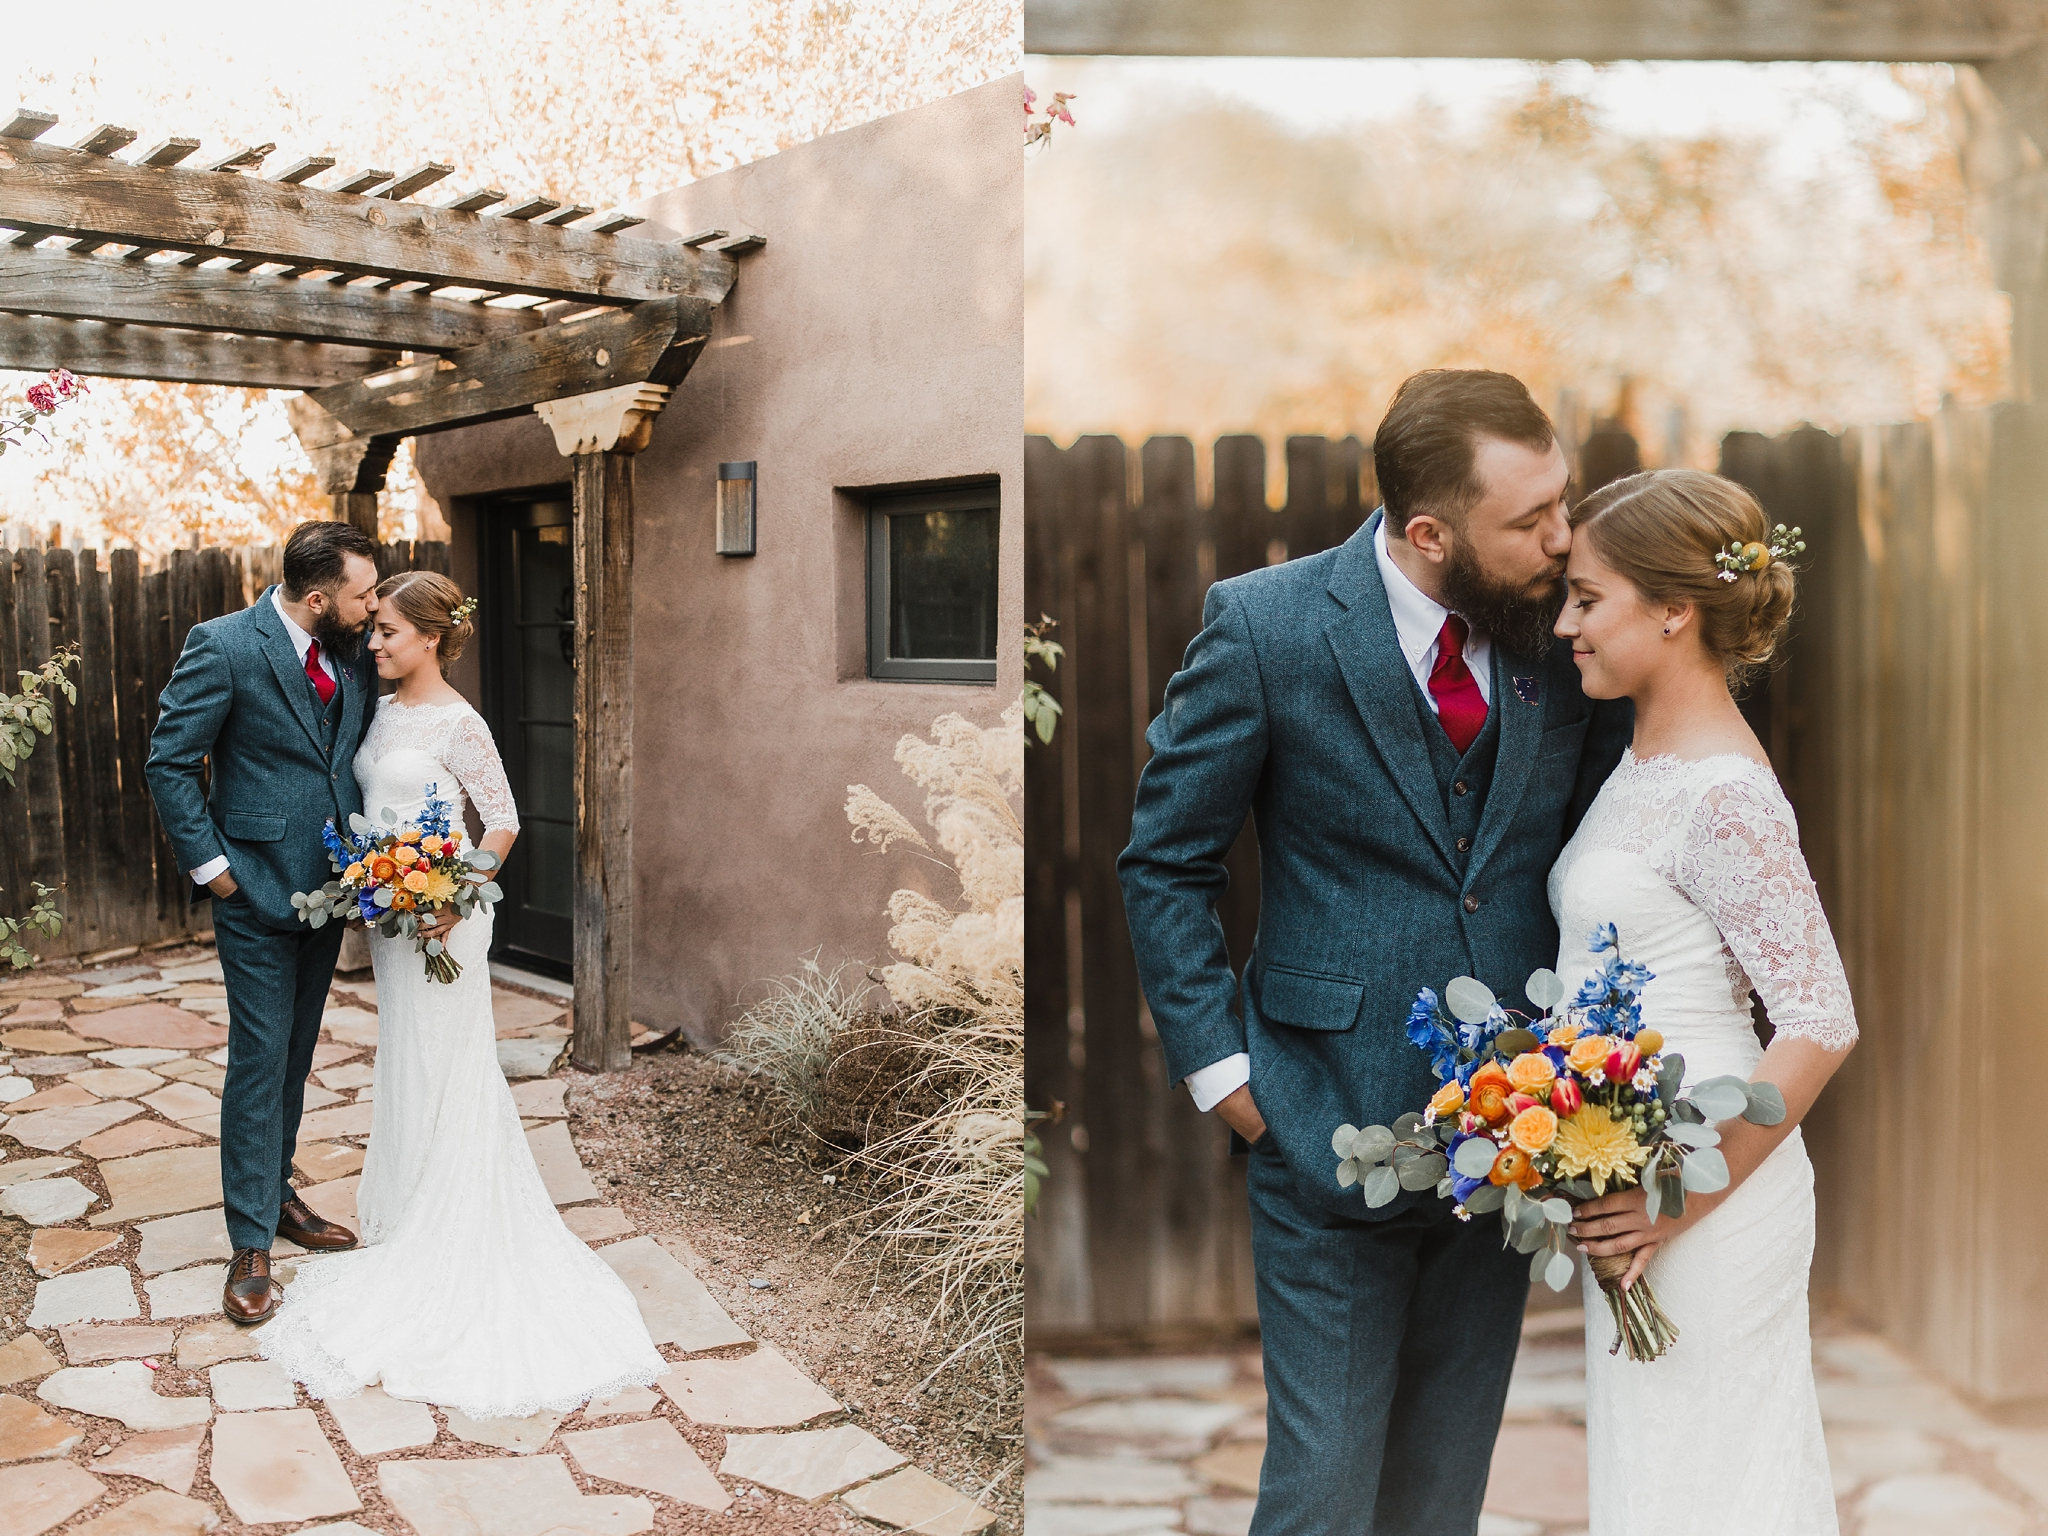 Alicia+lucia+photography+-+albuquerque+wedding+photographer+-+santa+fe+wedding+photography+-+new+mexico+wedding+photographer+-+albuquerque+wedding+-+sarabande+bed+breakfast+-+bed+and+breakfast+wedding_0029.jpg